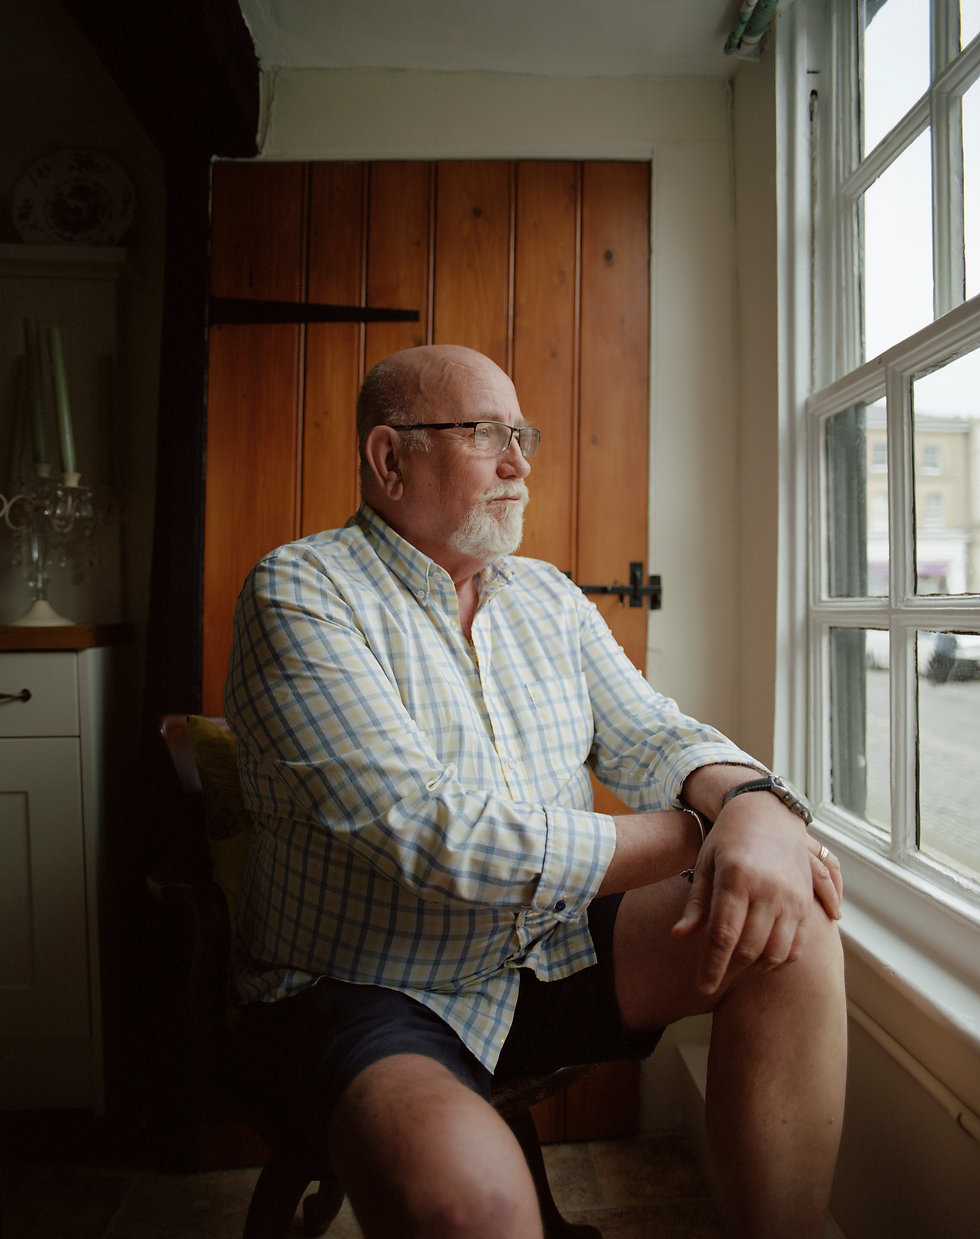 An older man sitting close to the window looking outside